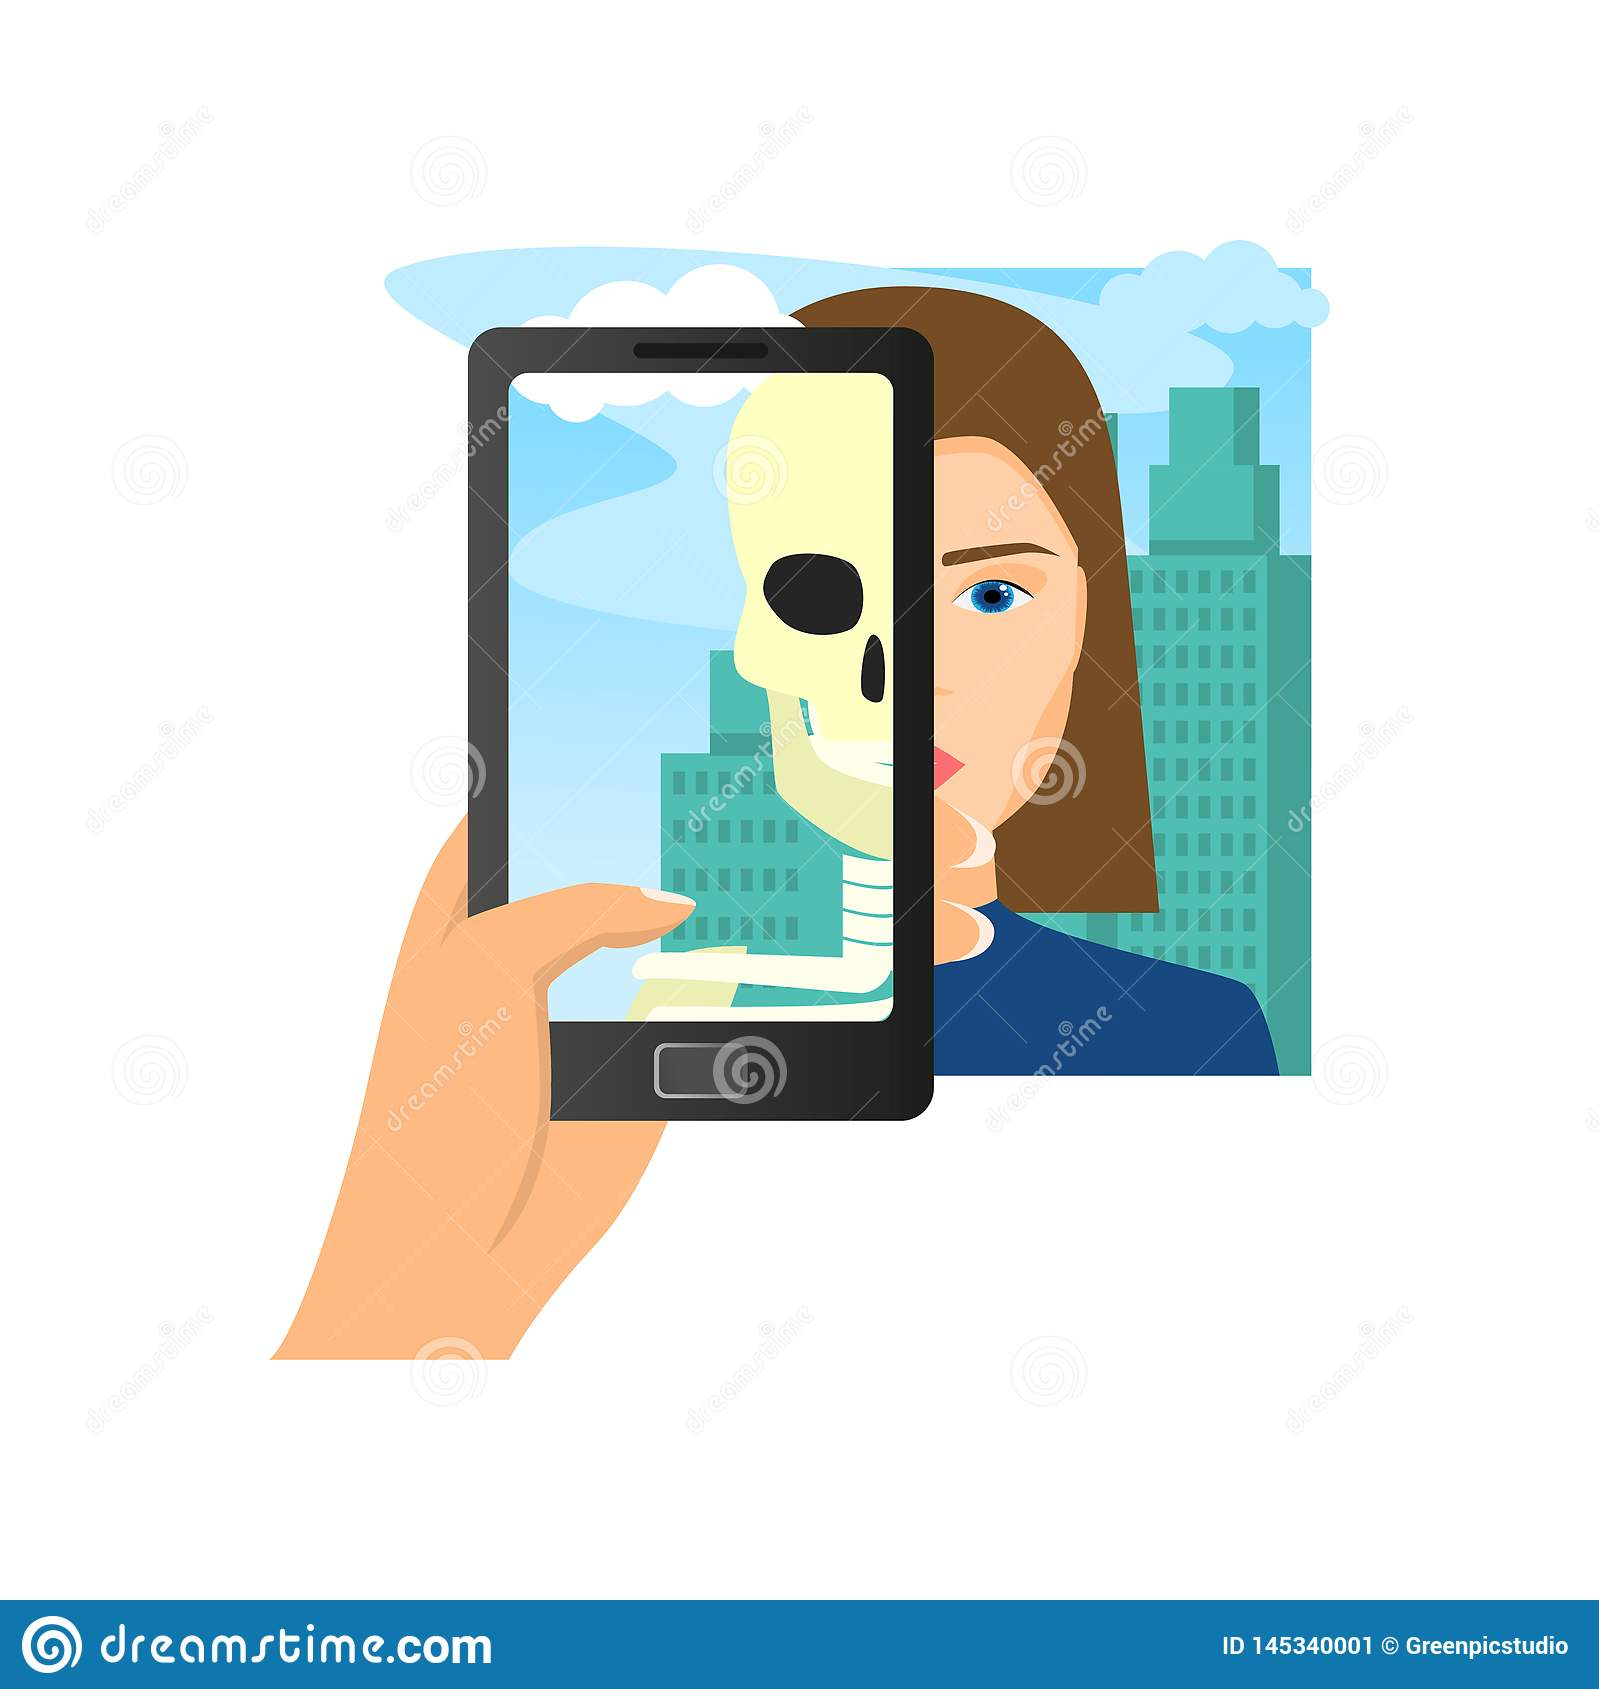 Augmented reality using smartphone saw woman skull